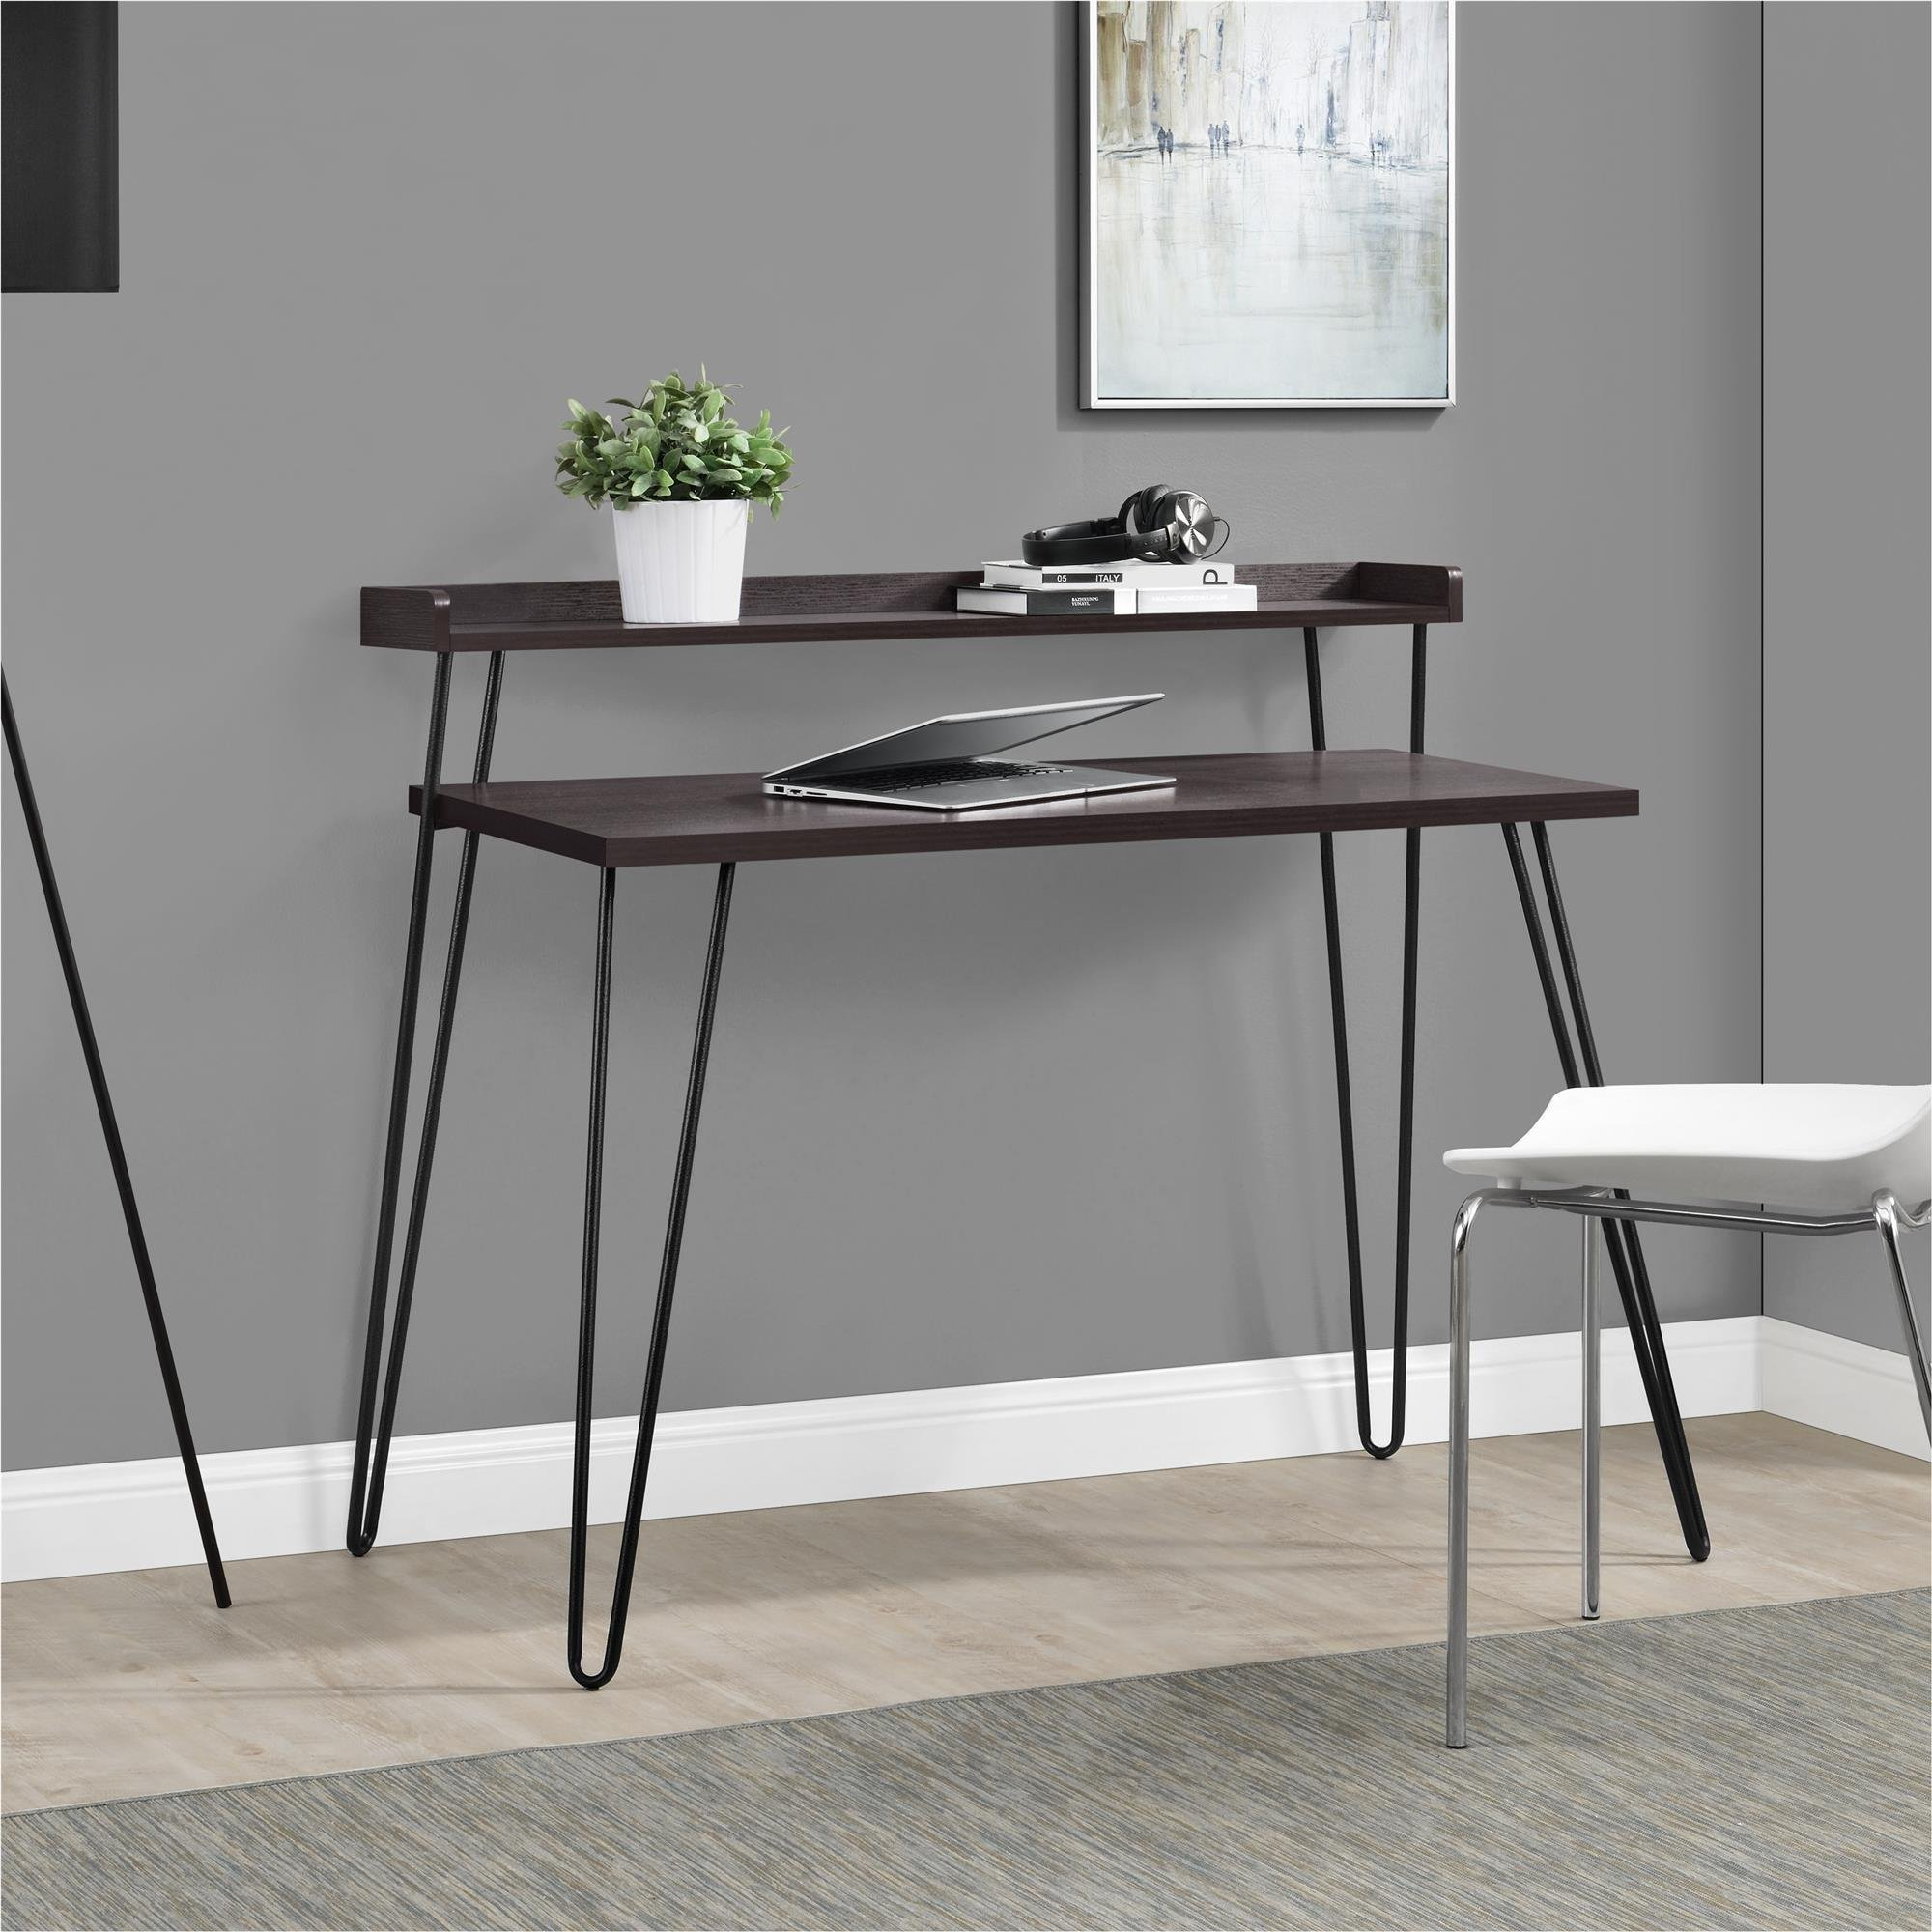 Ameriwood Home Haven Retro Desk with Riser, Espresso by Ameriwood Home